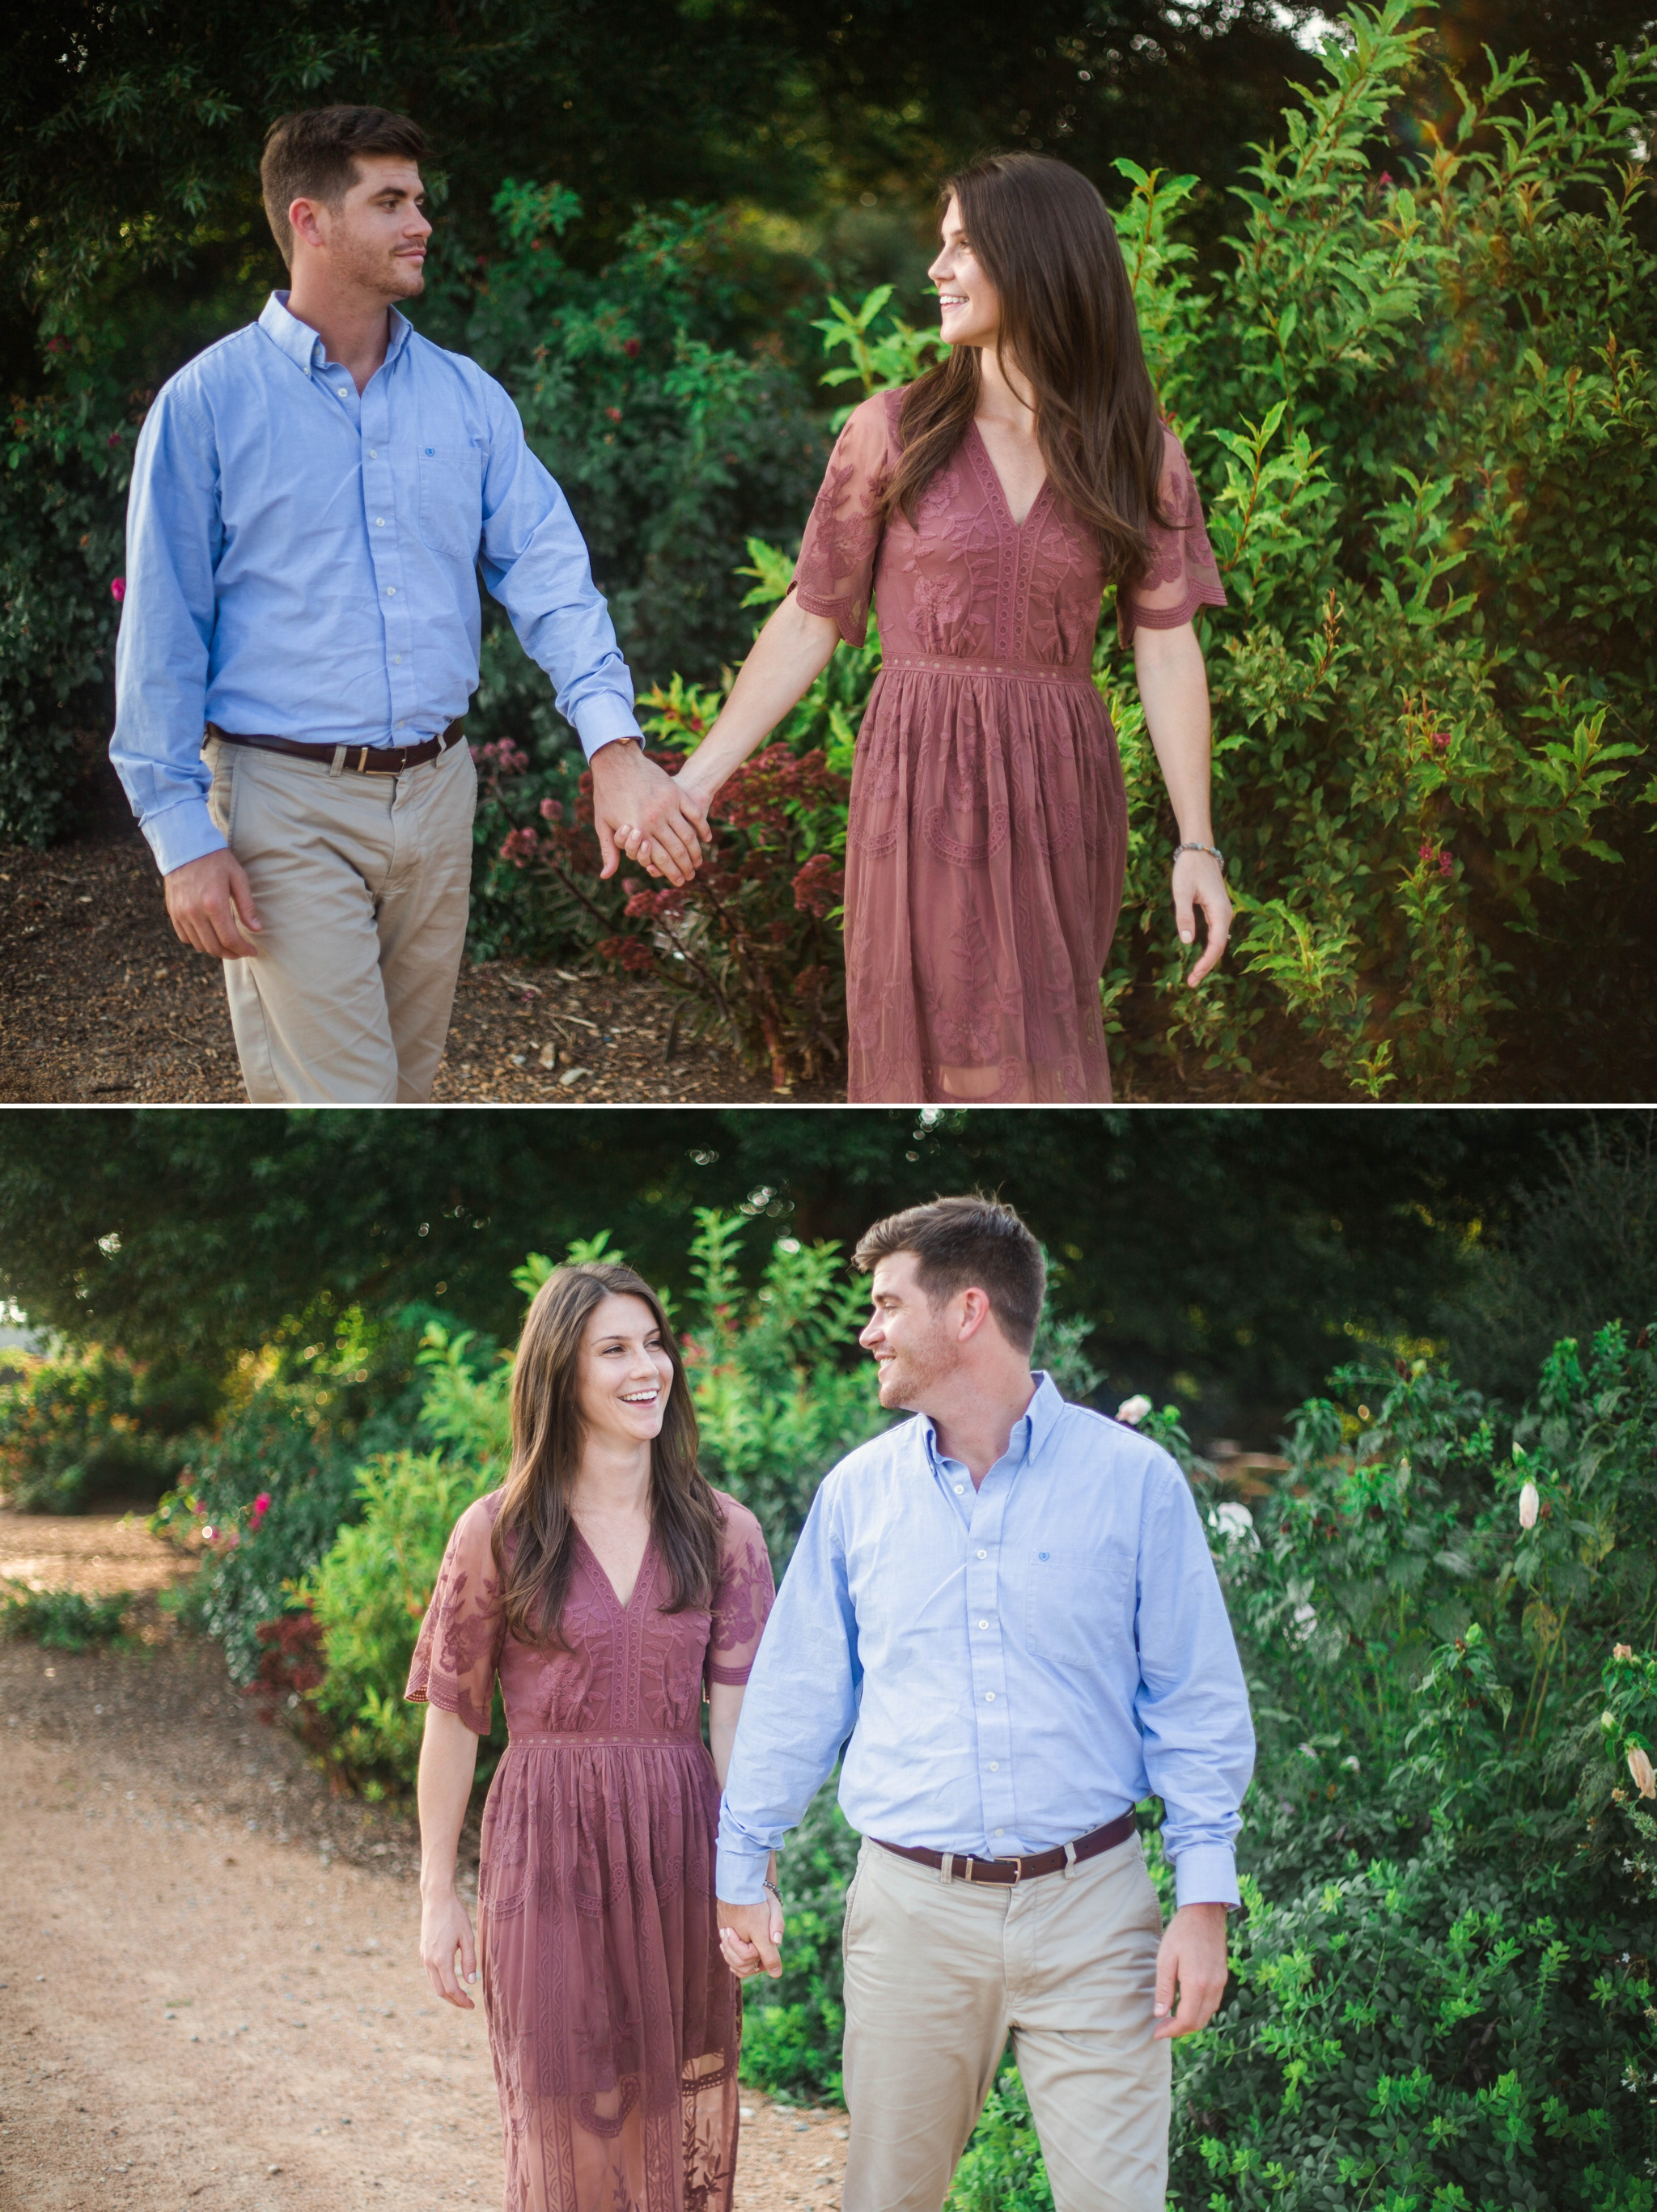 Aryn + Tyler -  Photography Session at the JC Raulston Arboretum - Raleigh Wedding Photographer